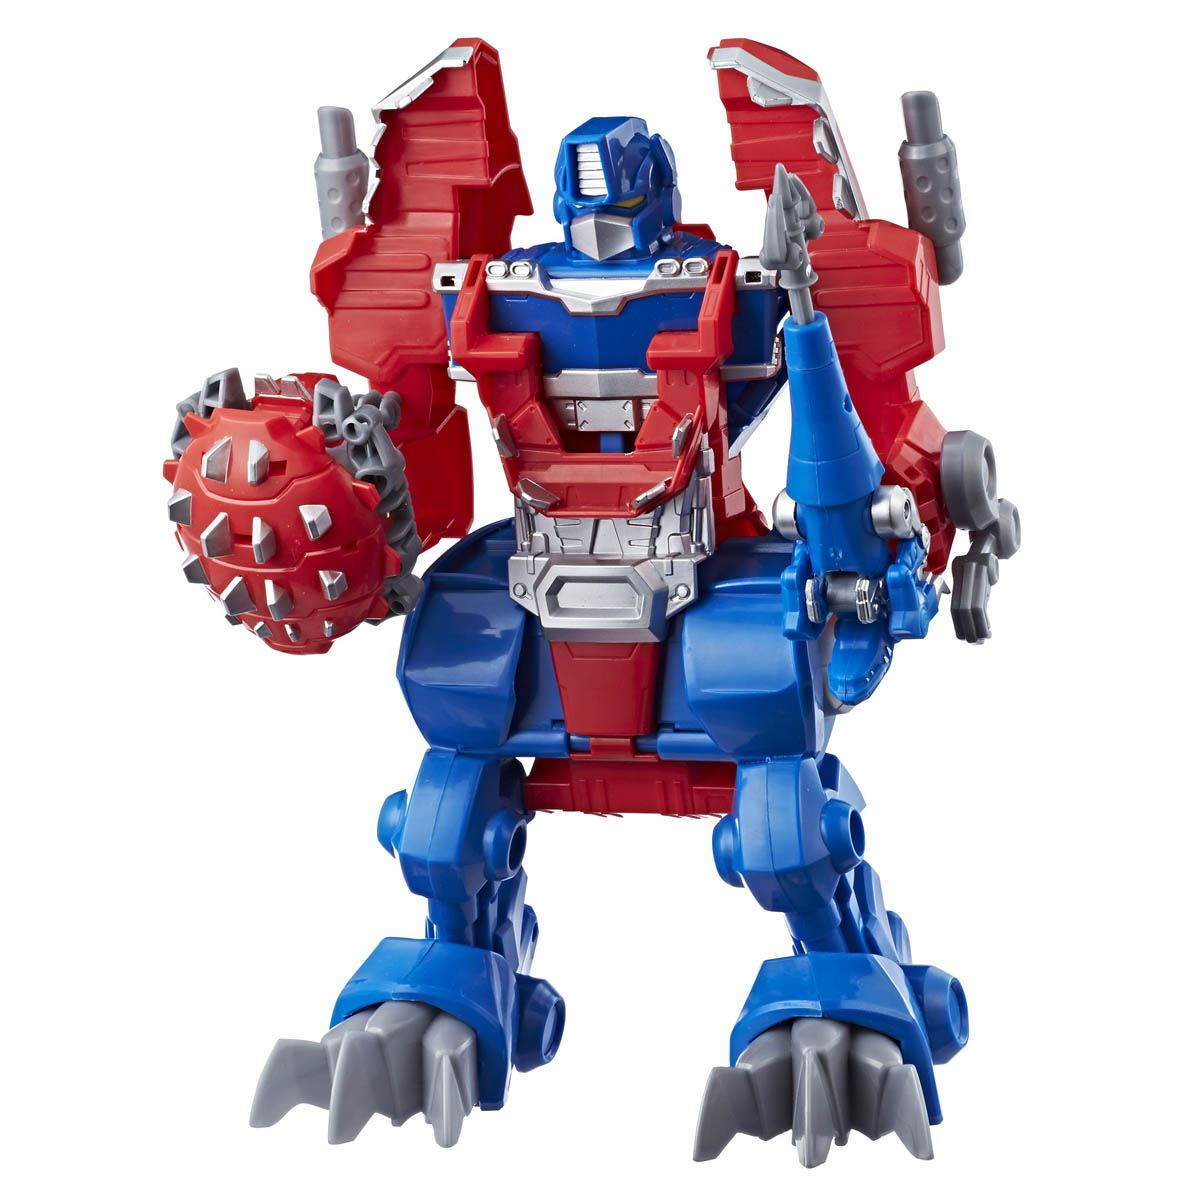 Optimus Prime Caballero Guardia Transformers Rescue Bots